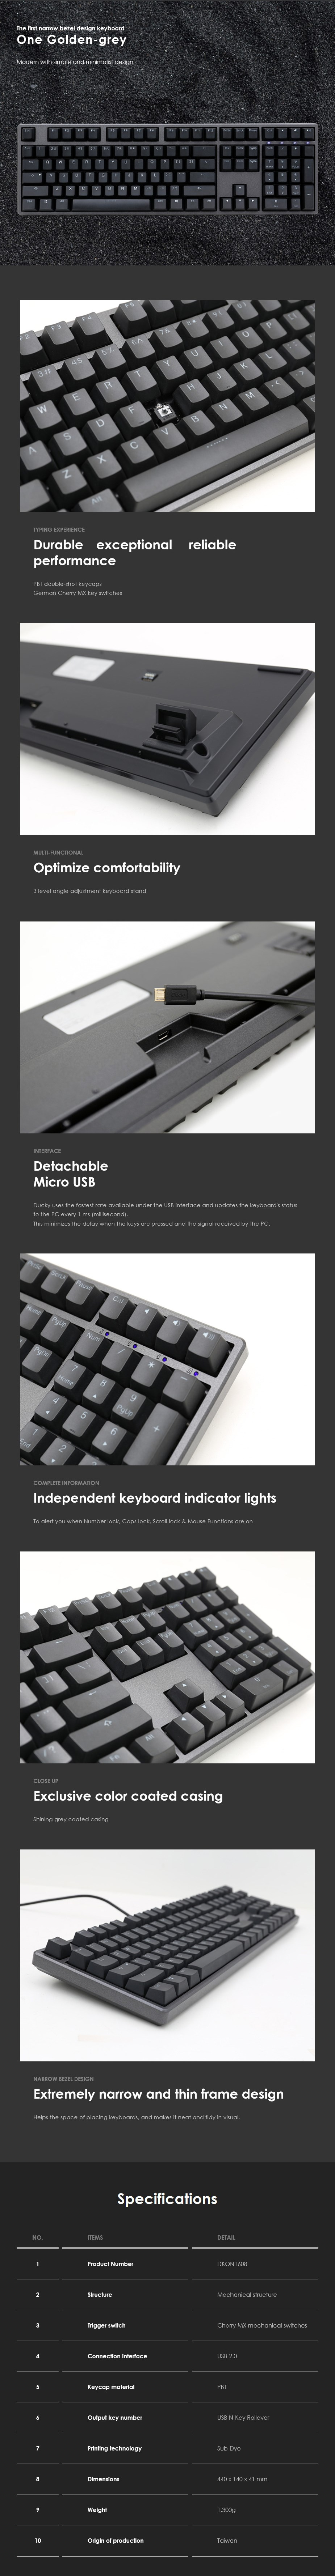 Ducky One Mechanical Keyboard - Cherry MX Brown (PBT Dye-Sub) - Overview 1